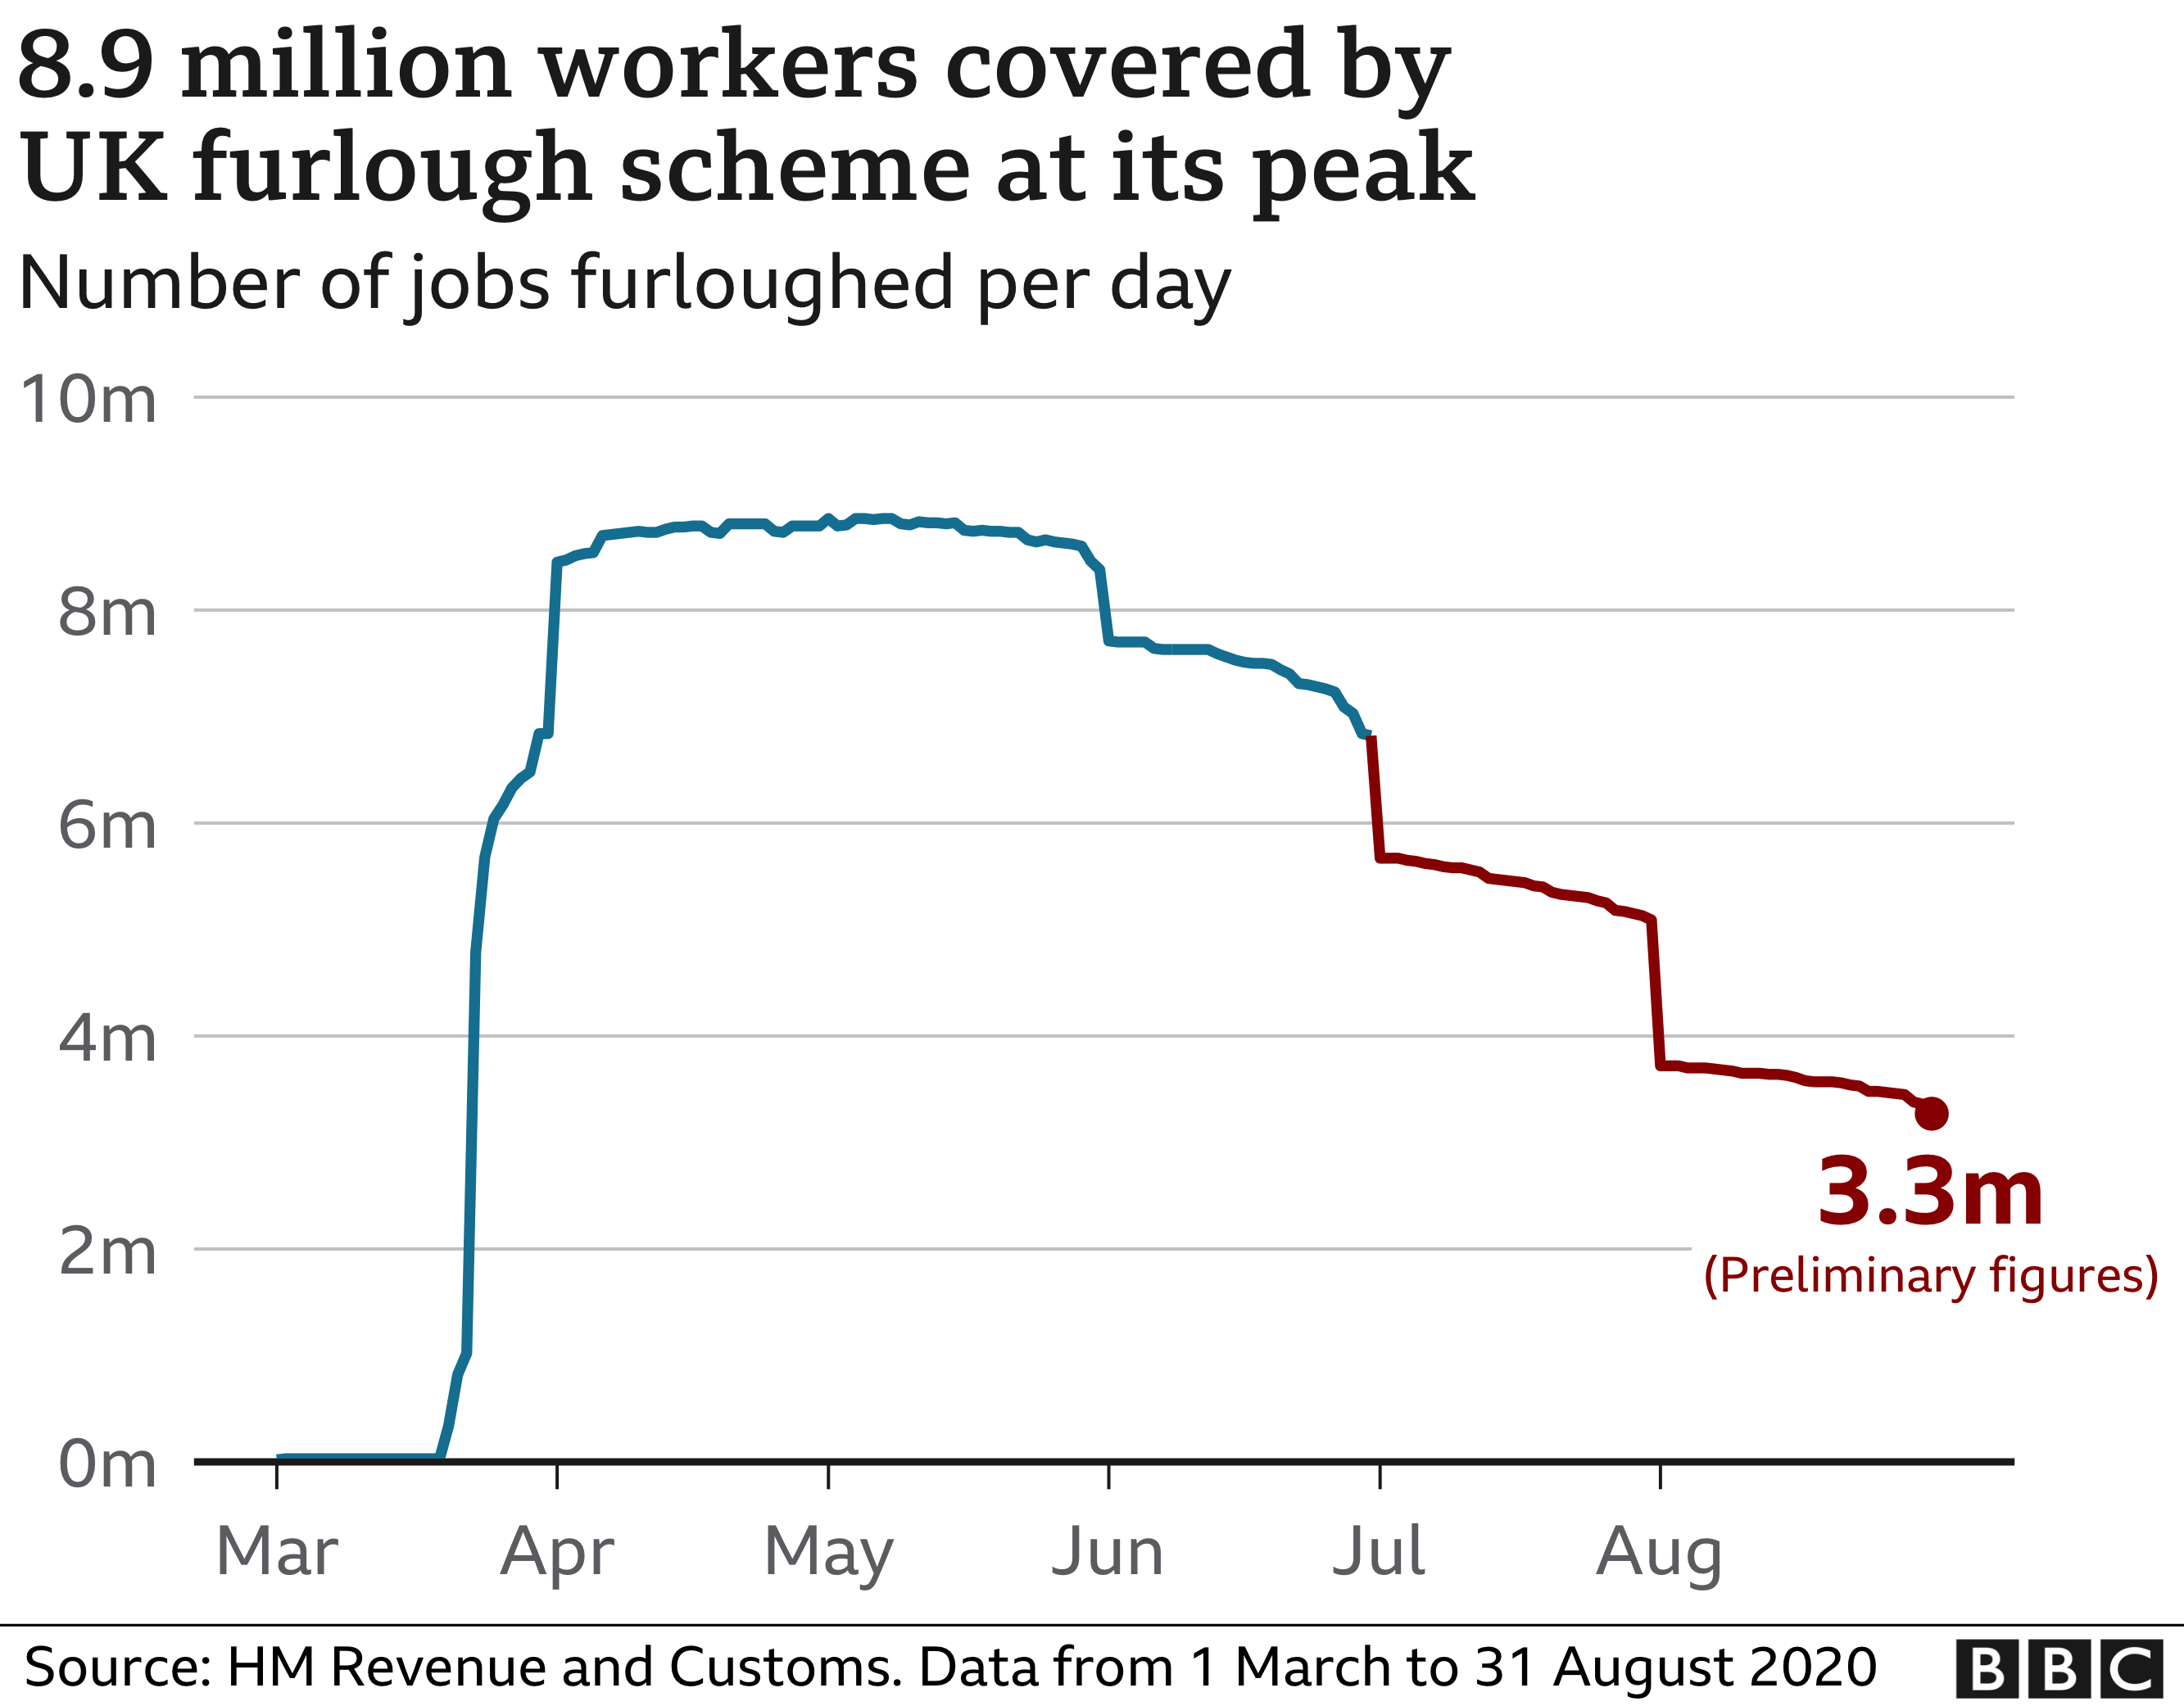 Number of furloughed workers